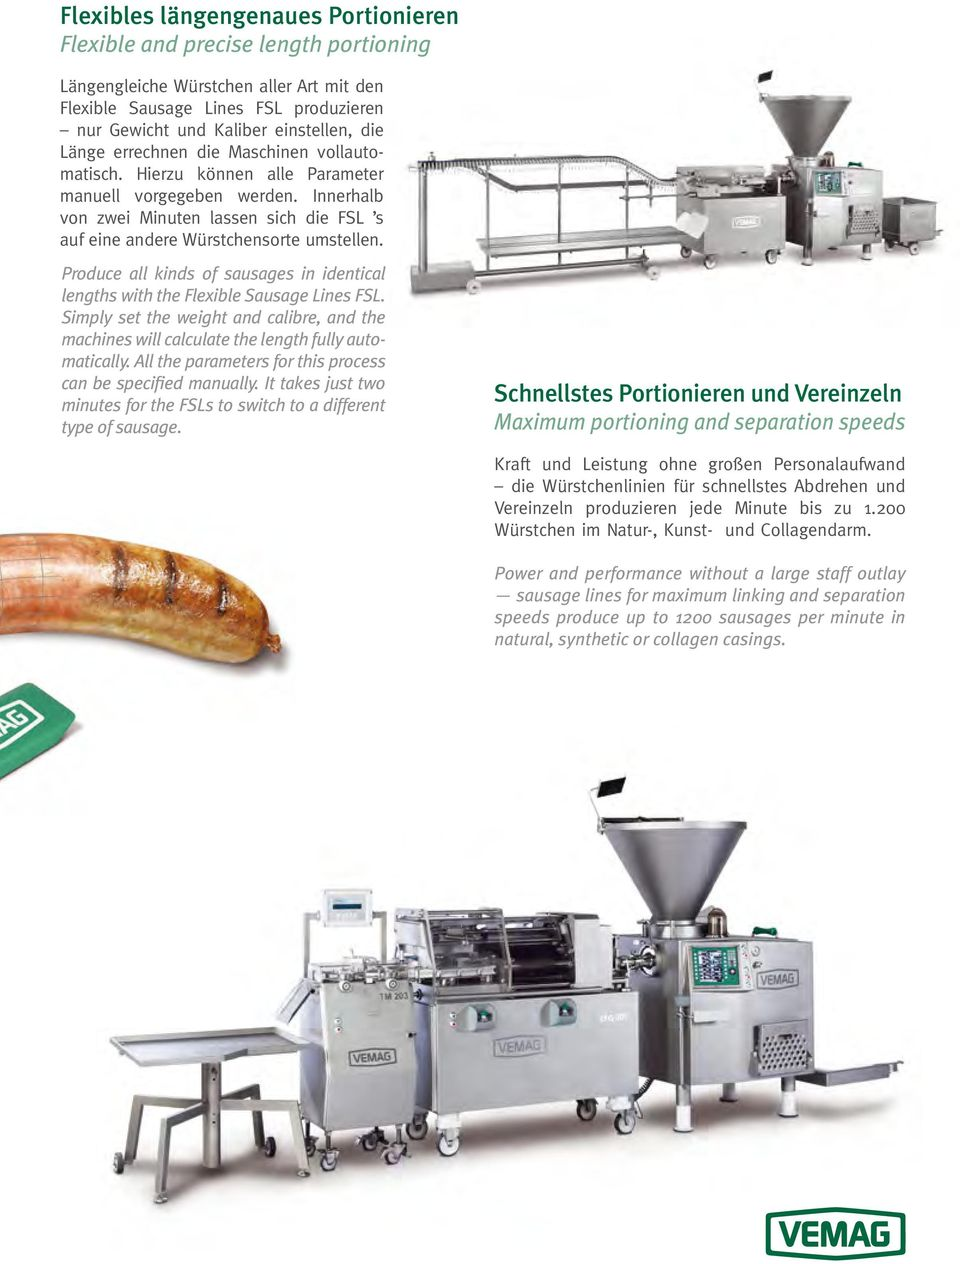 Produce all kinds of sausages in identical lengths with the Flexible Sausage Lines FSL. Simply set the weight and calibre, and the machines will calculate the length fully automatically.